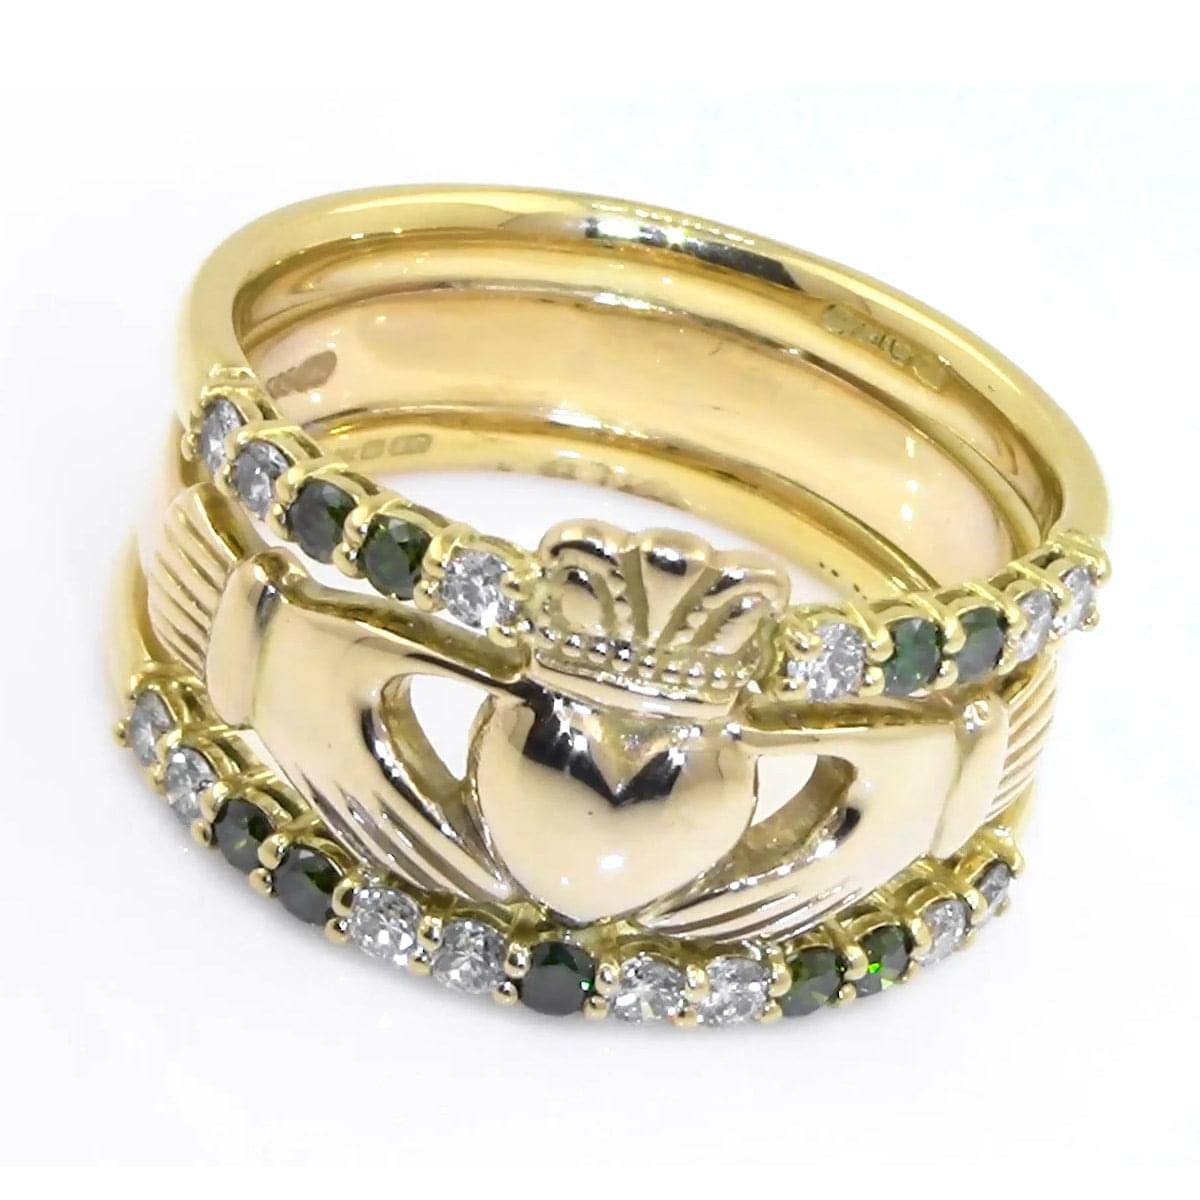 Gold Claddagh Ring With White And Green Diamonds